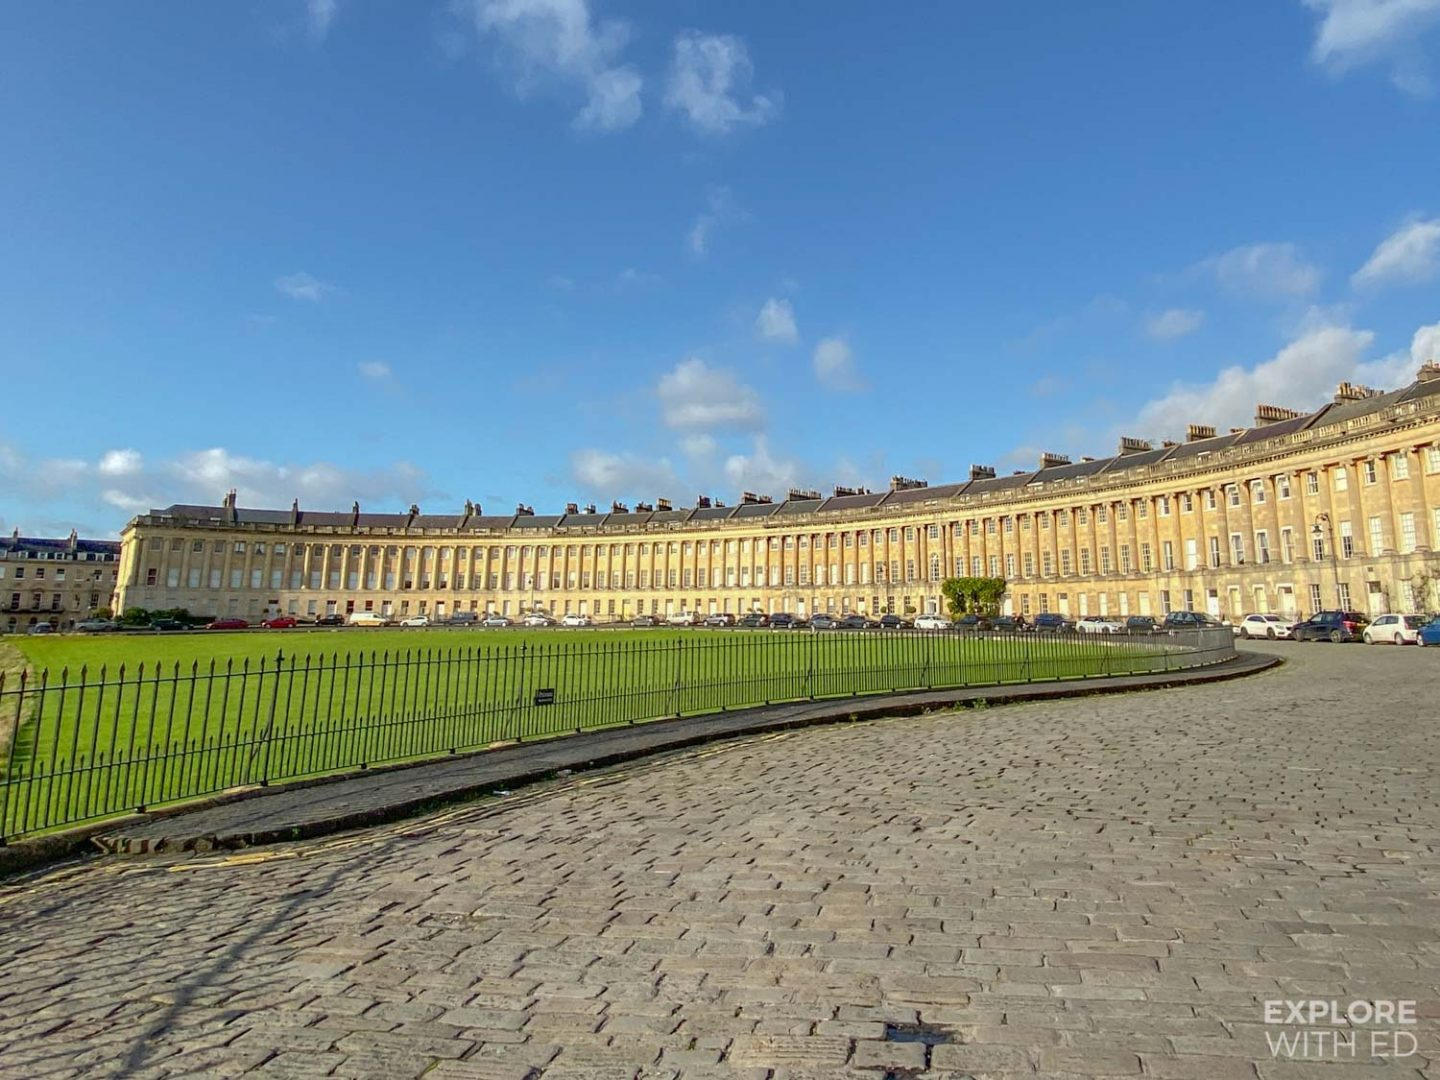 Royal Crescent is one of my top photo spots in Bath